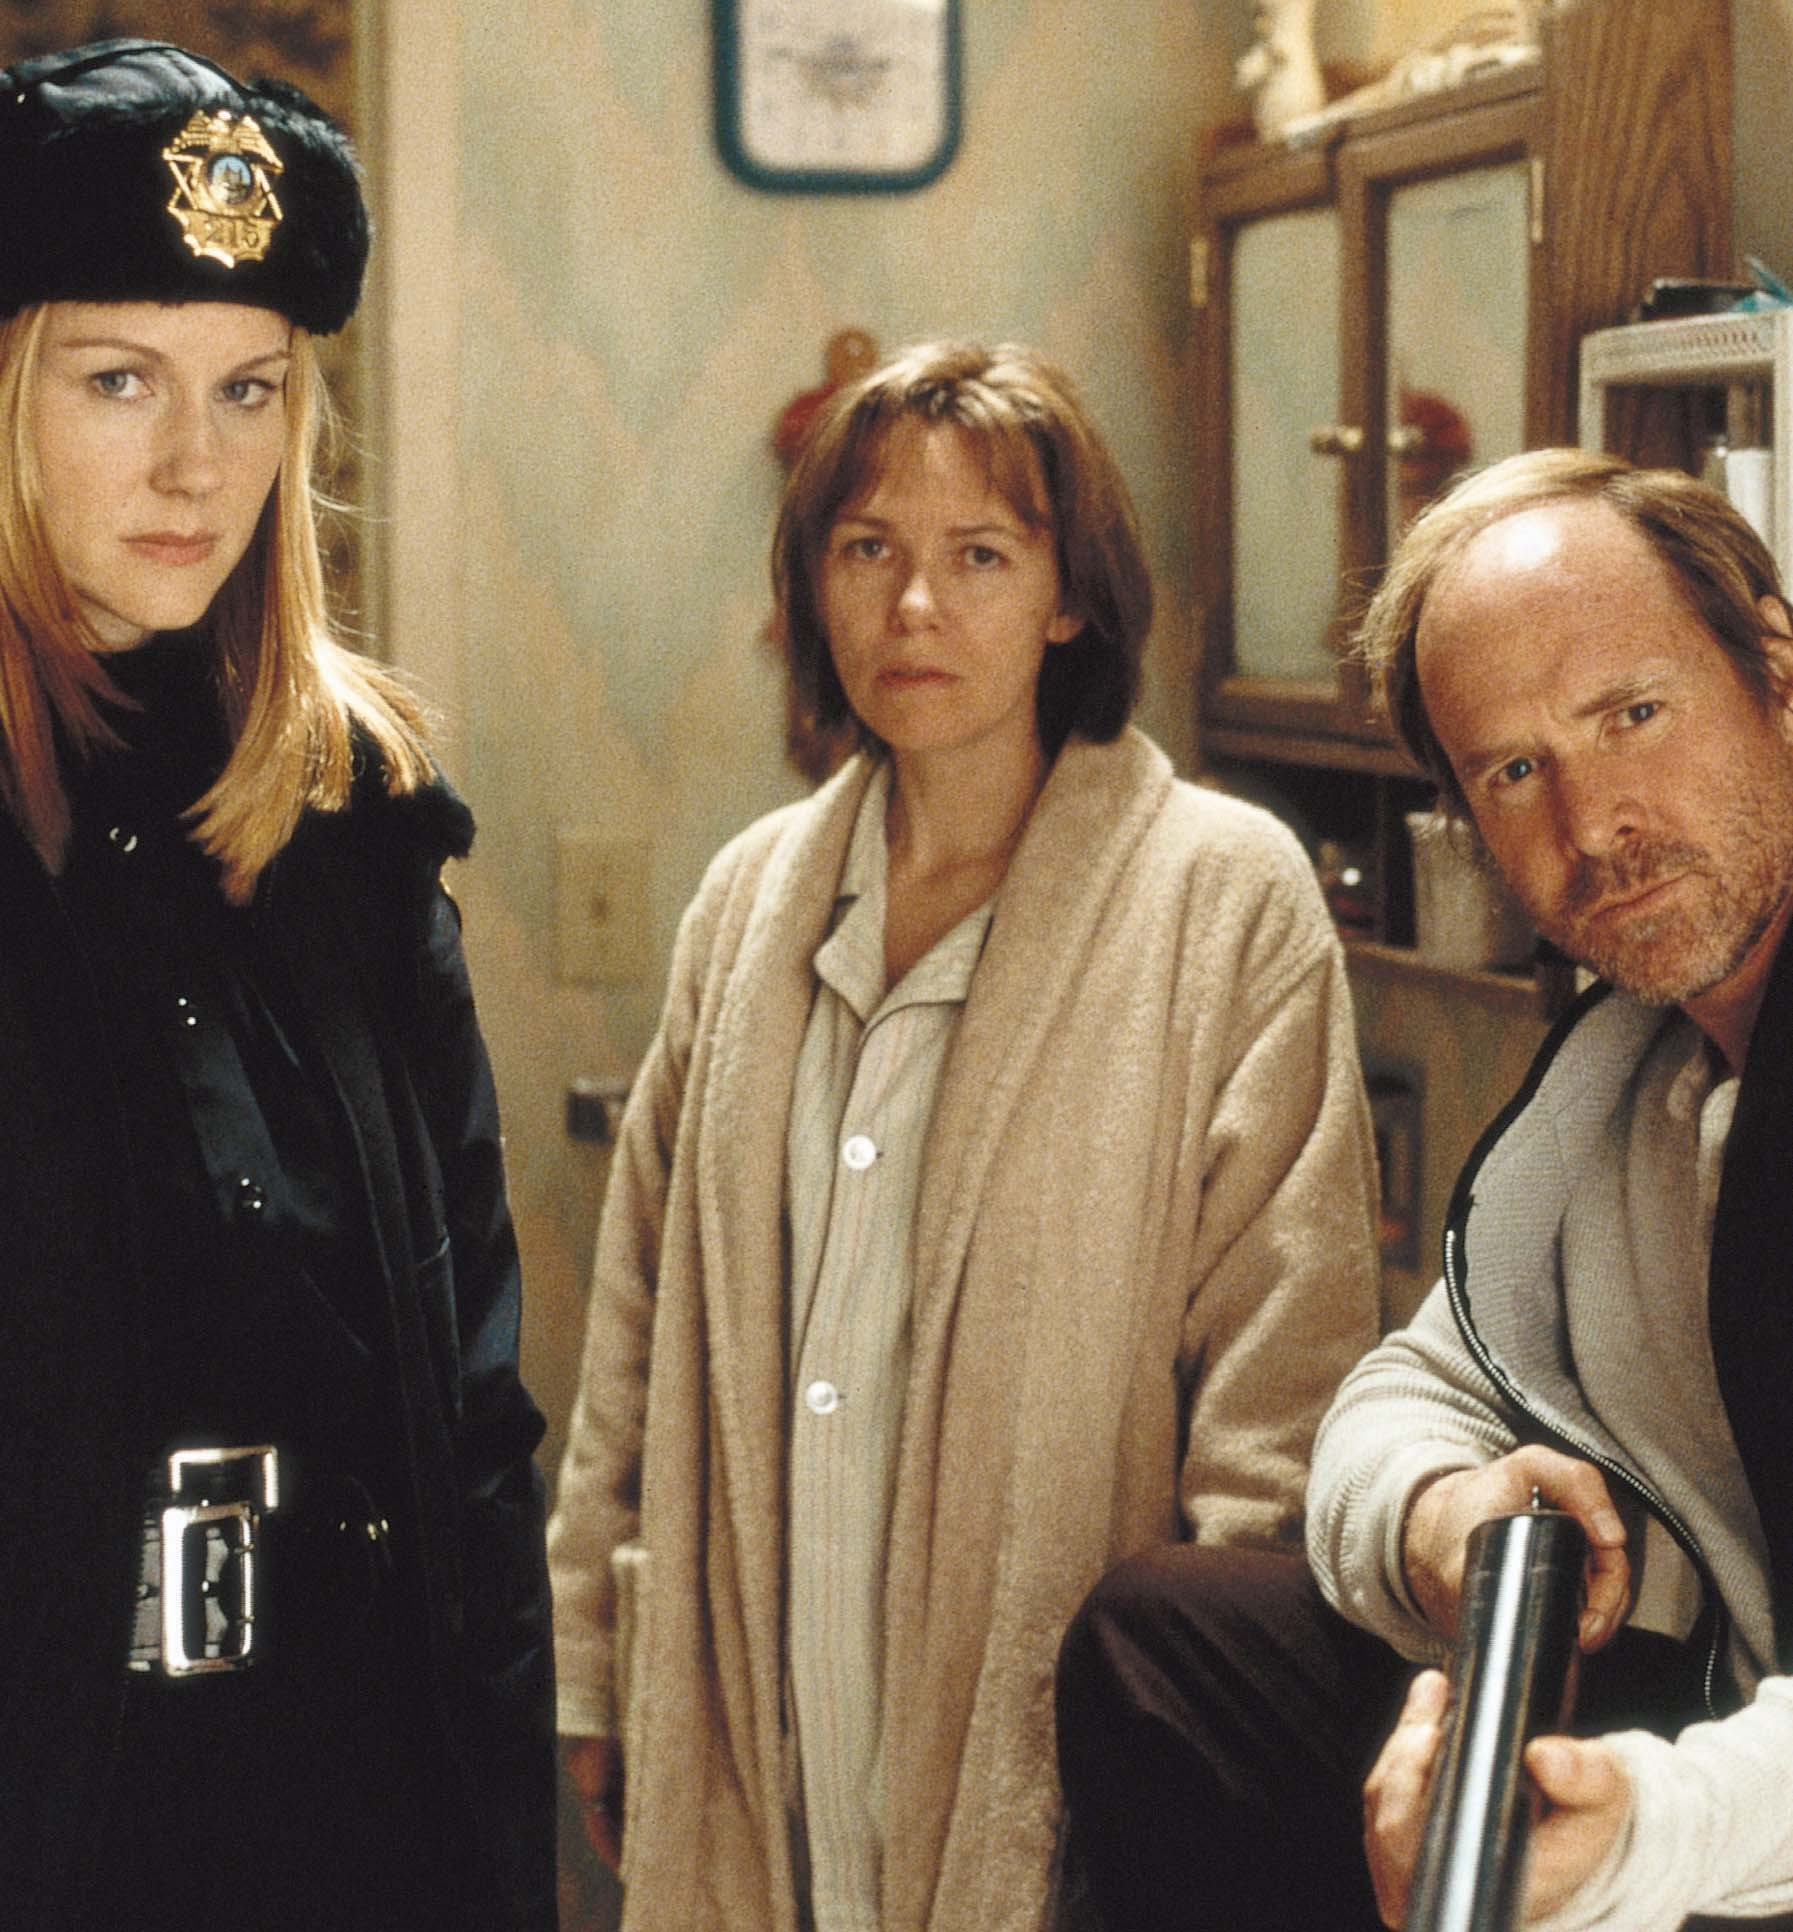 Laura Linney, Will Patton, and Lucinda Jenney in The Mothman Prophecies (2002)